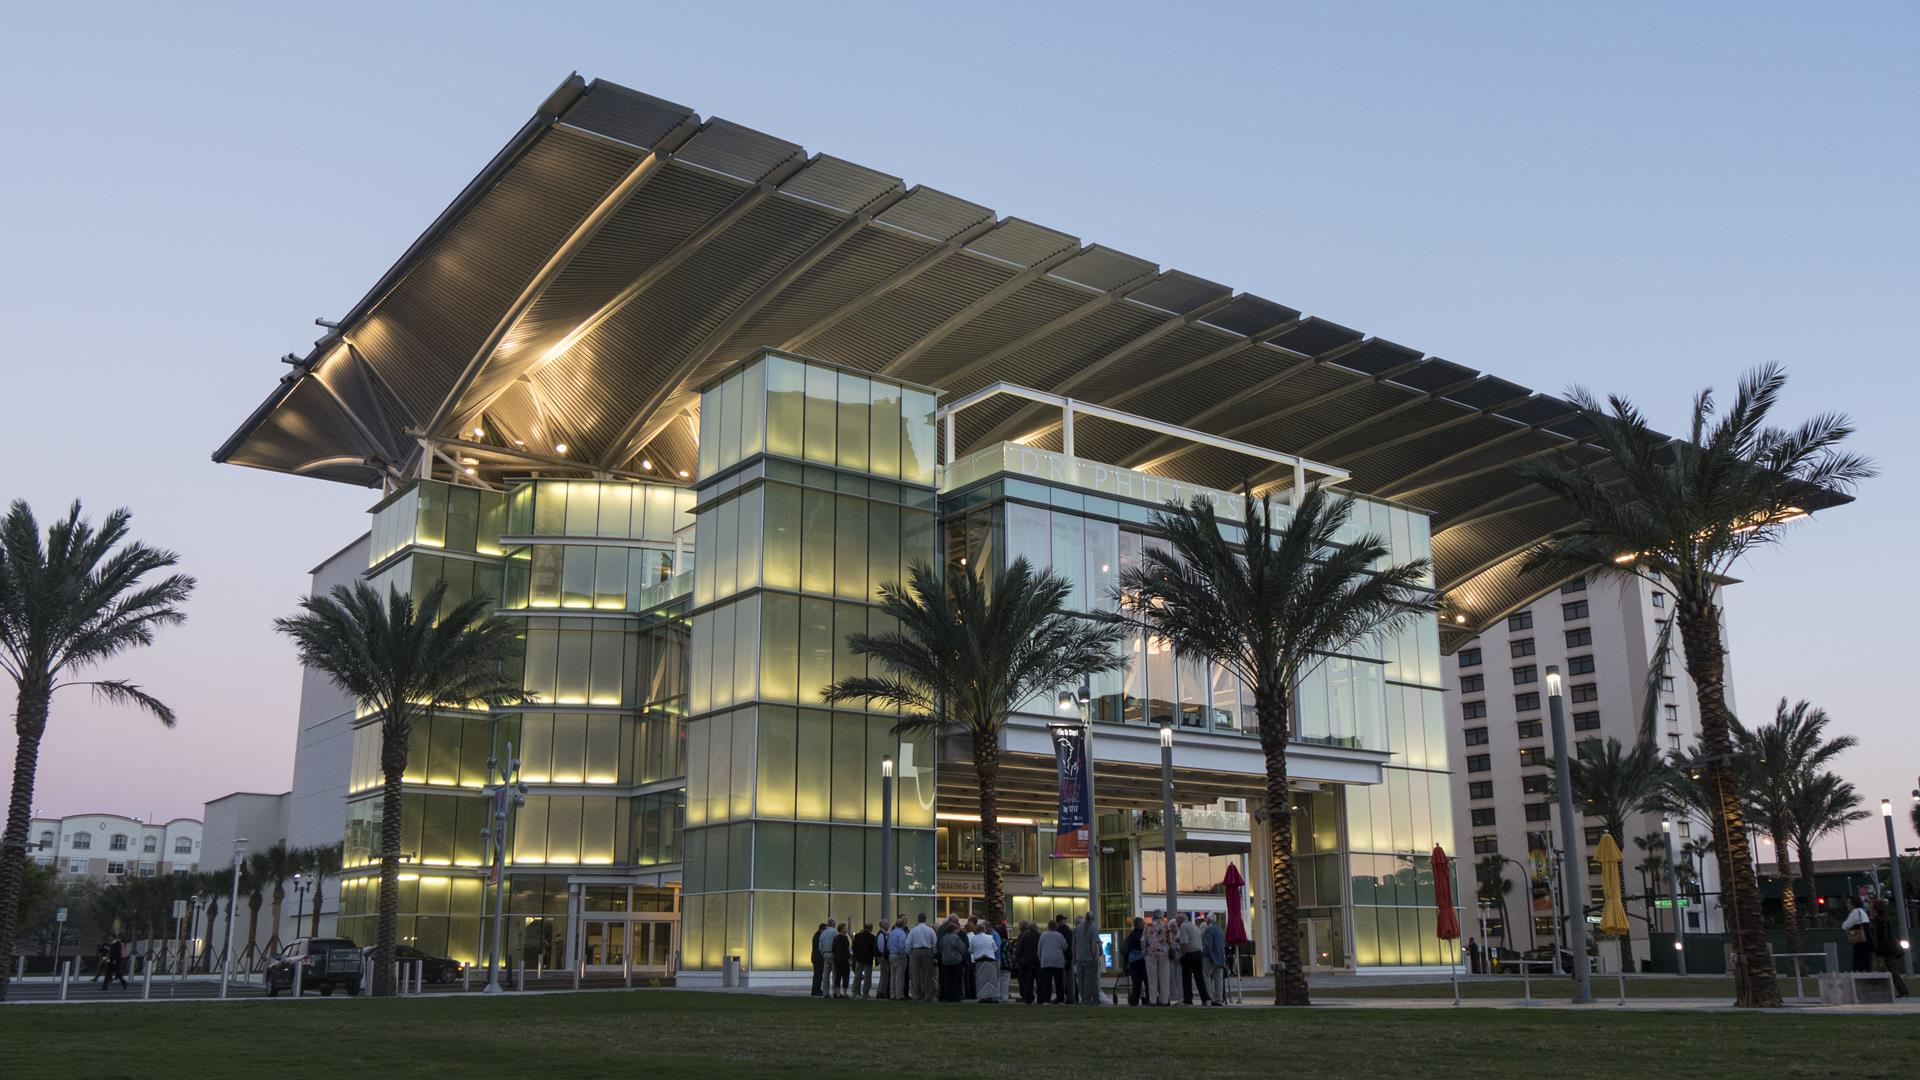 Top 5 Performance Venues for Students in Orlando for 2019